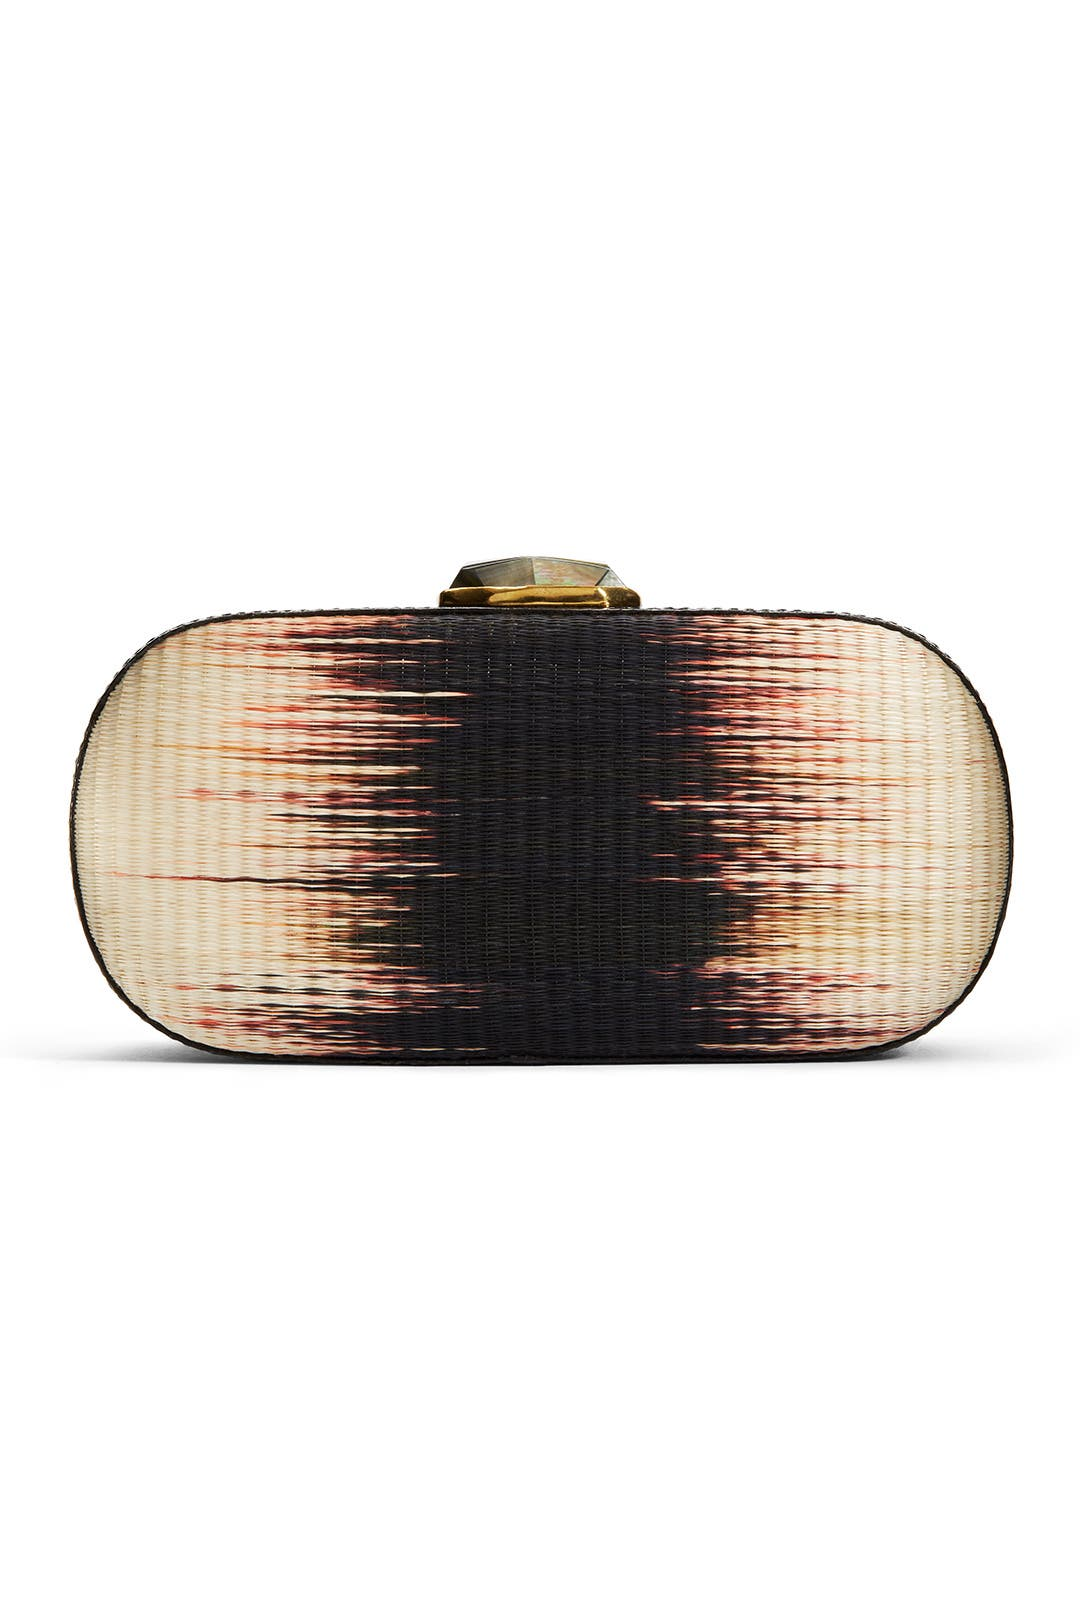 Rhythmic Raffia Clutch by Rafé